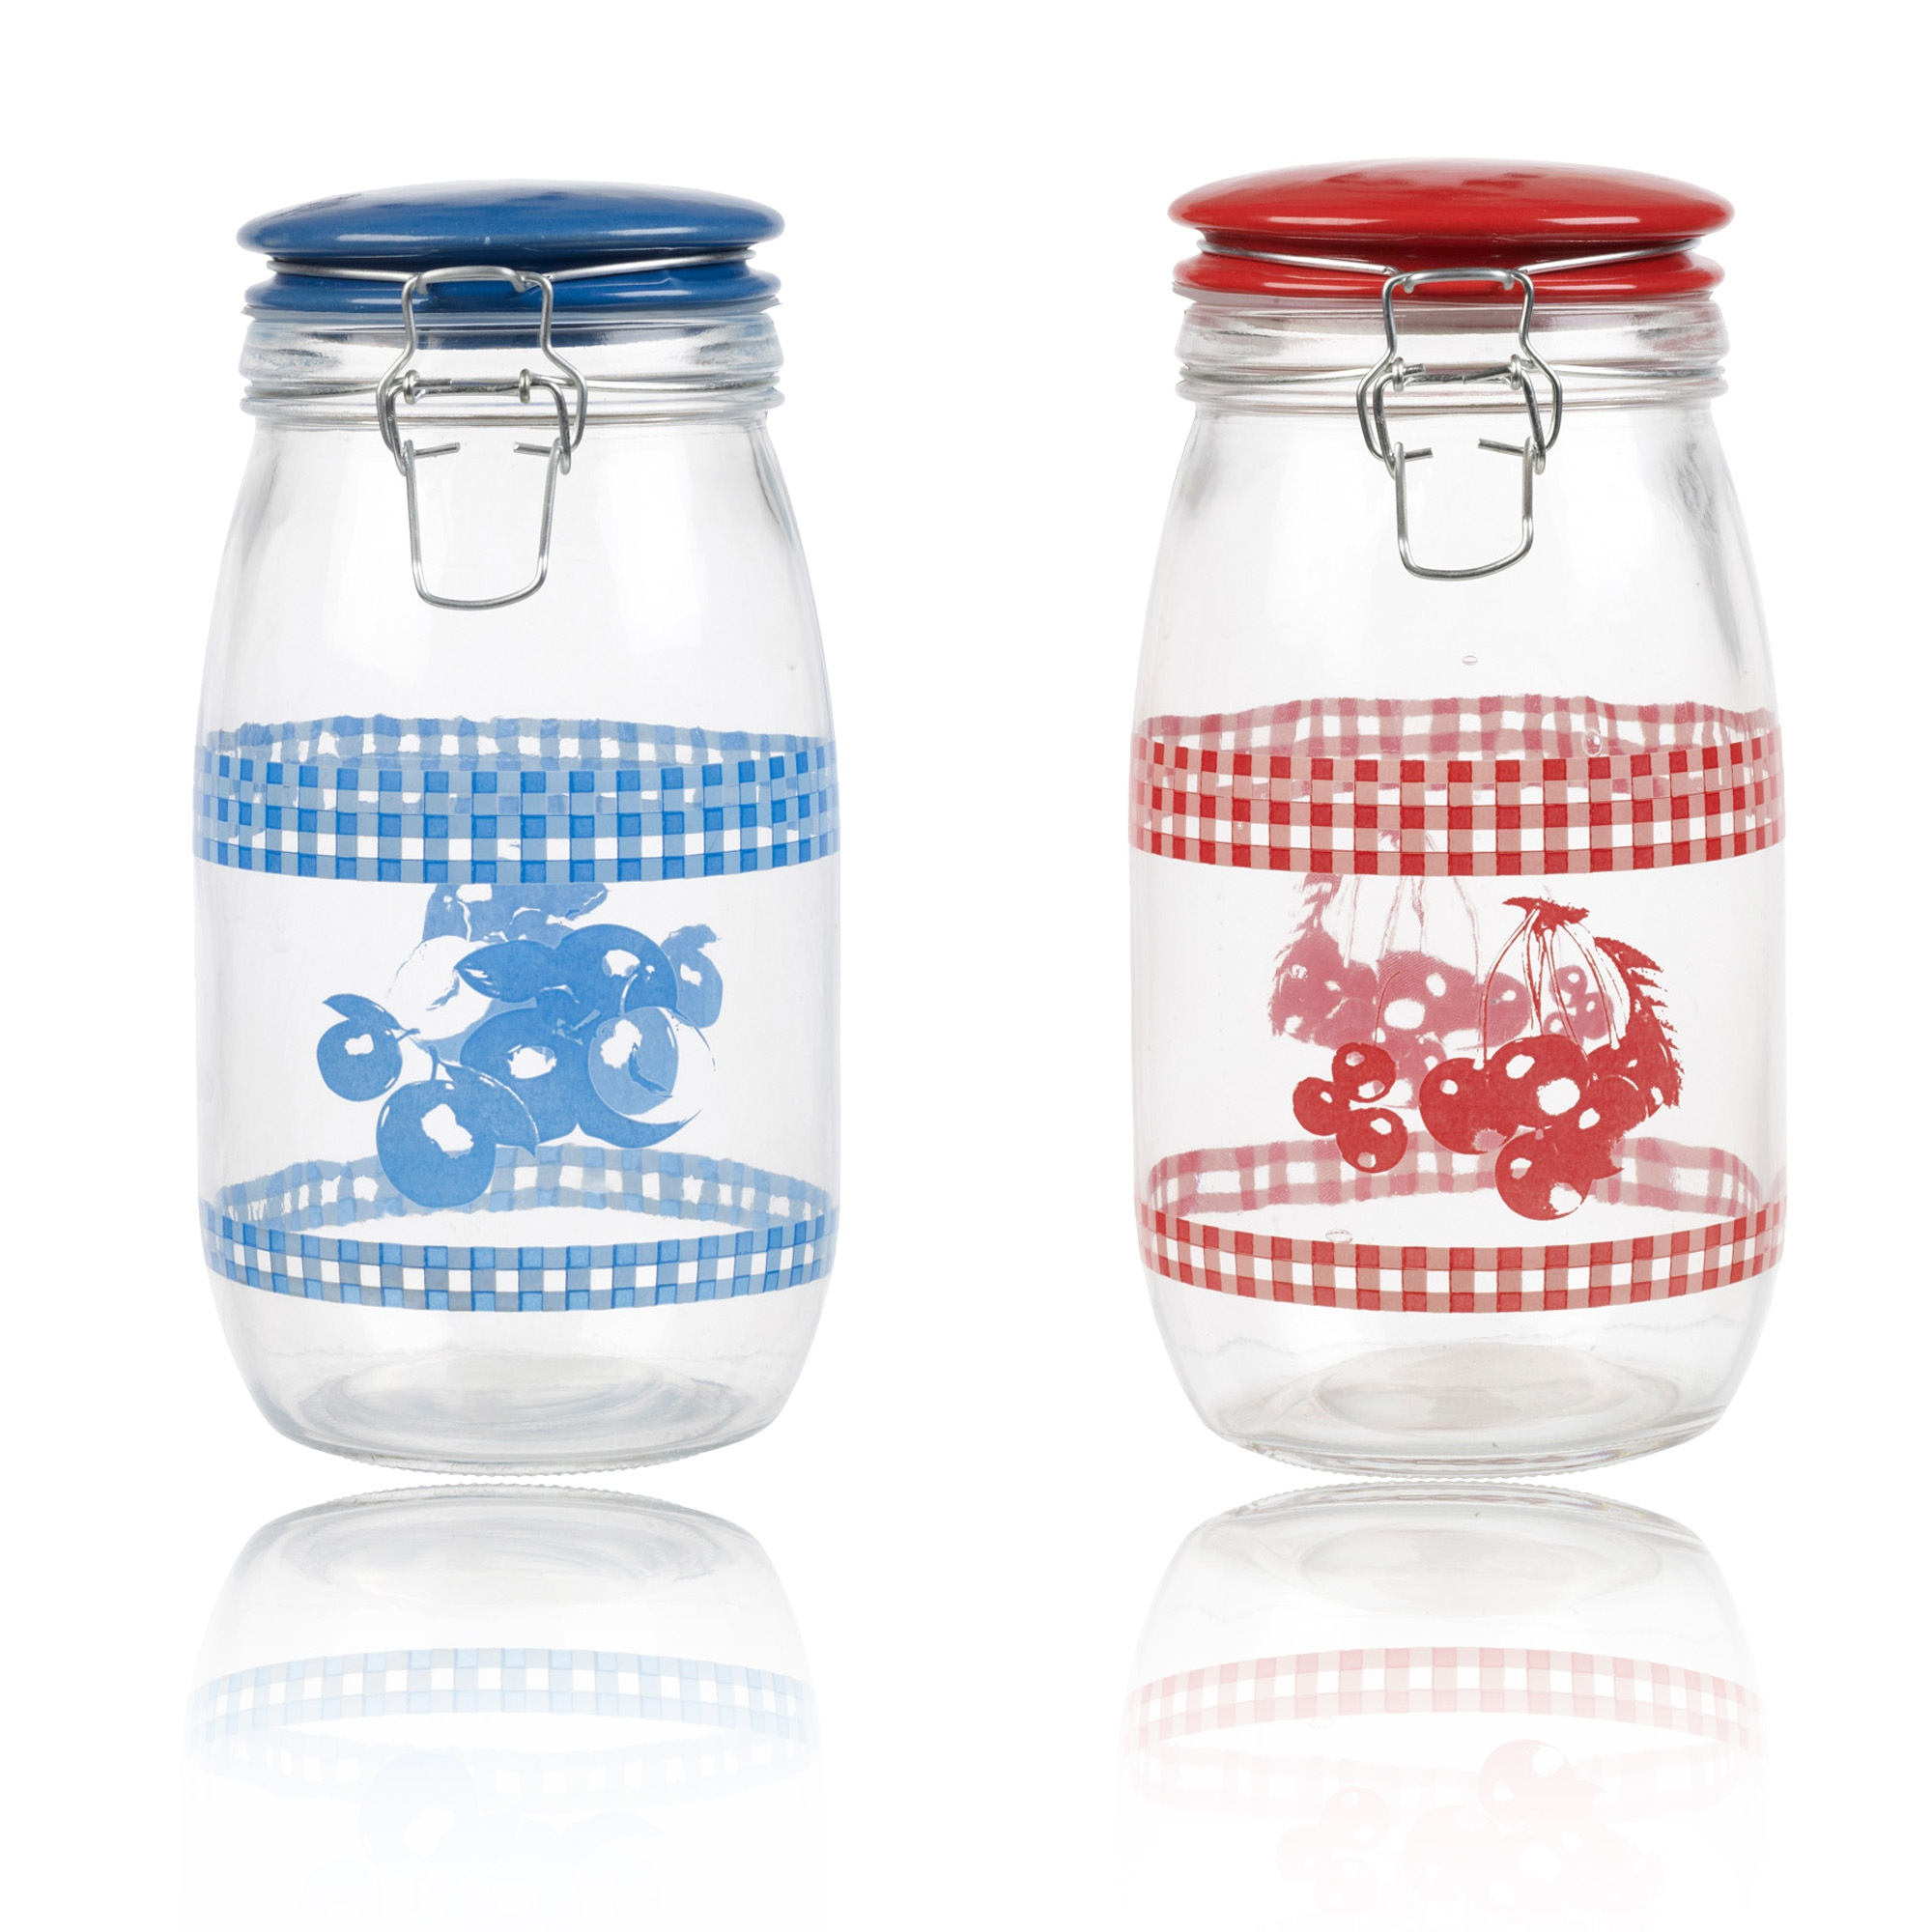 Ceramic Jars With Lids Large Glass Storage Jar With Ceramic Lid Air Tight Seal